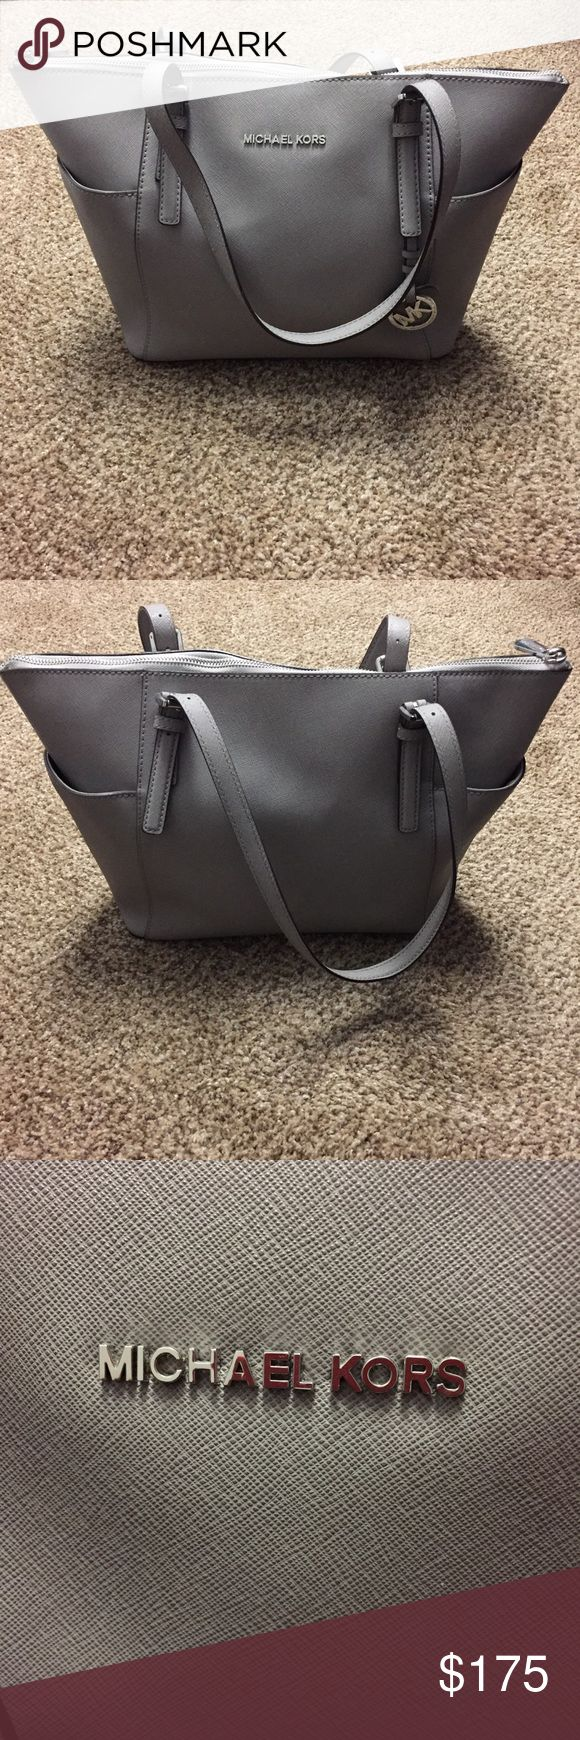 Michael Kors Jetset Medium Gray Tote Like new condition! Great sized bag along with a great color that goes with anything!!! Very clean inside and out with silver hardware. A must have for every wardrobe! Michael Kors Bags Totes